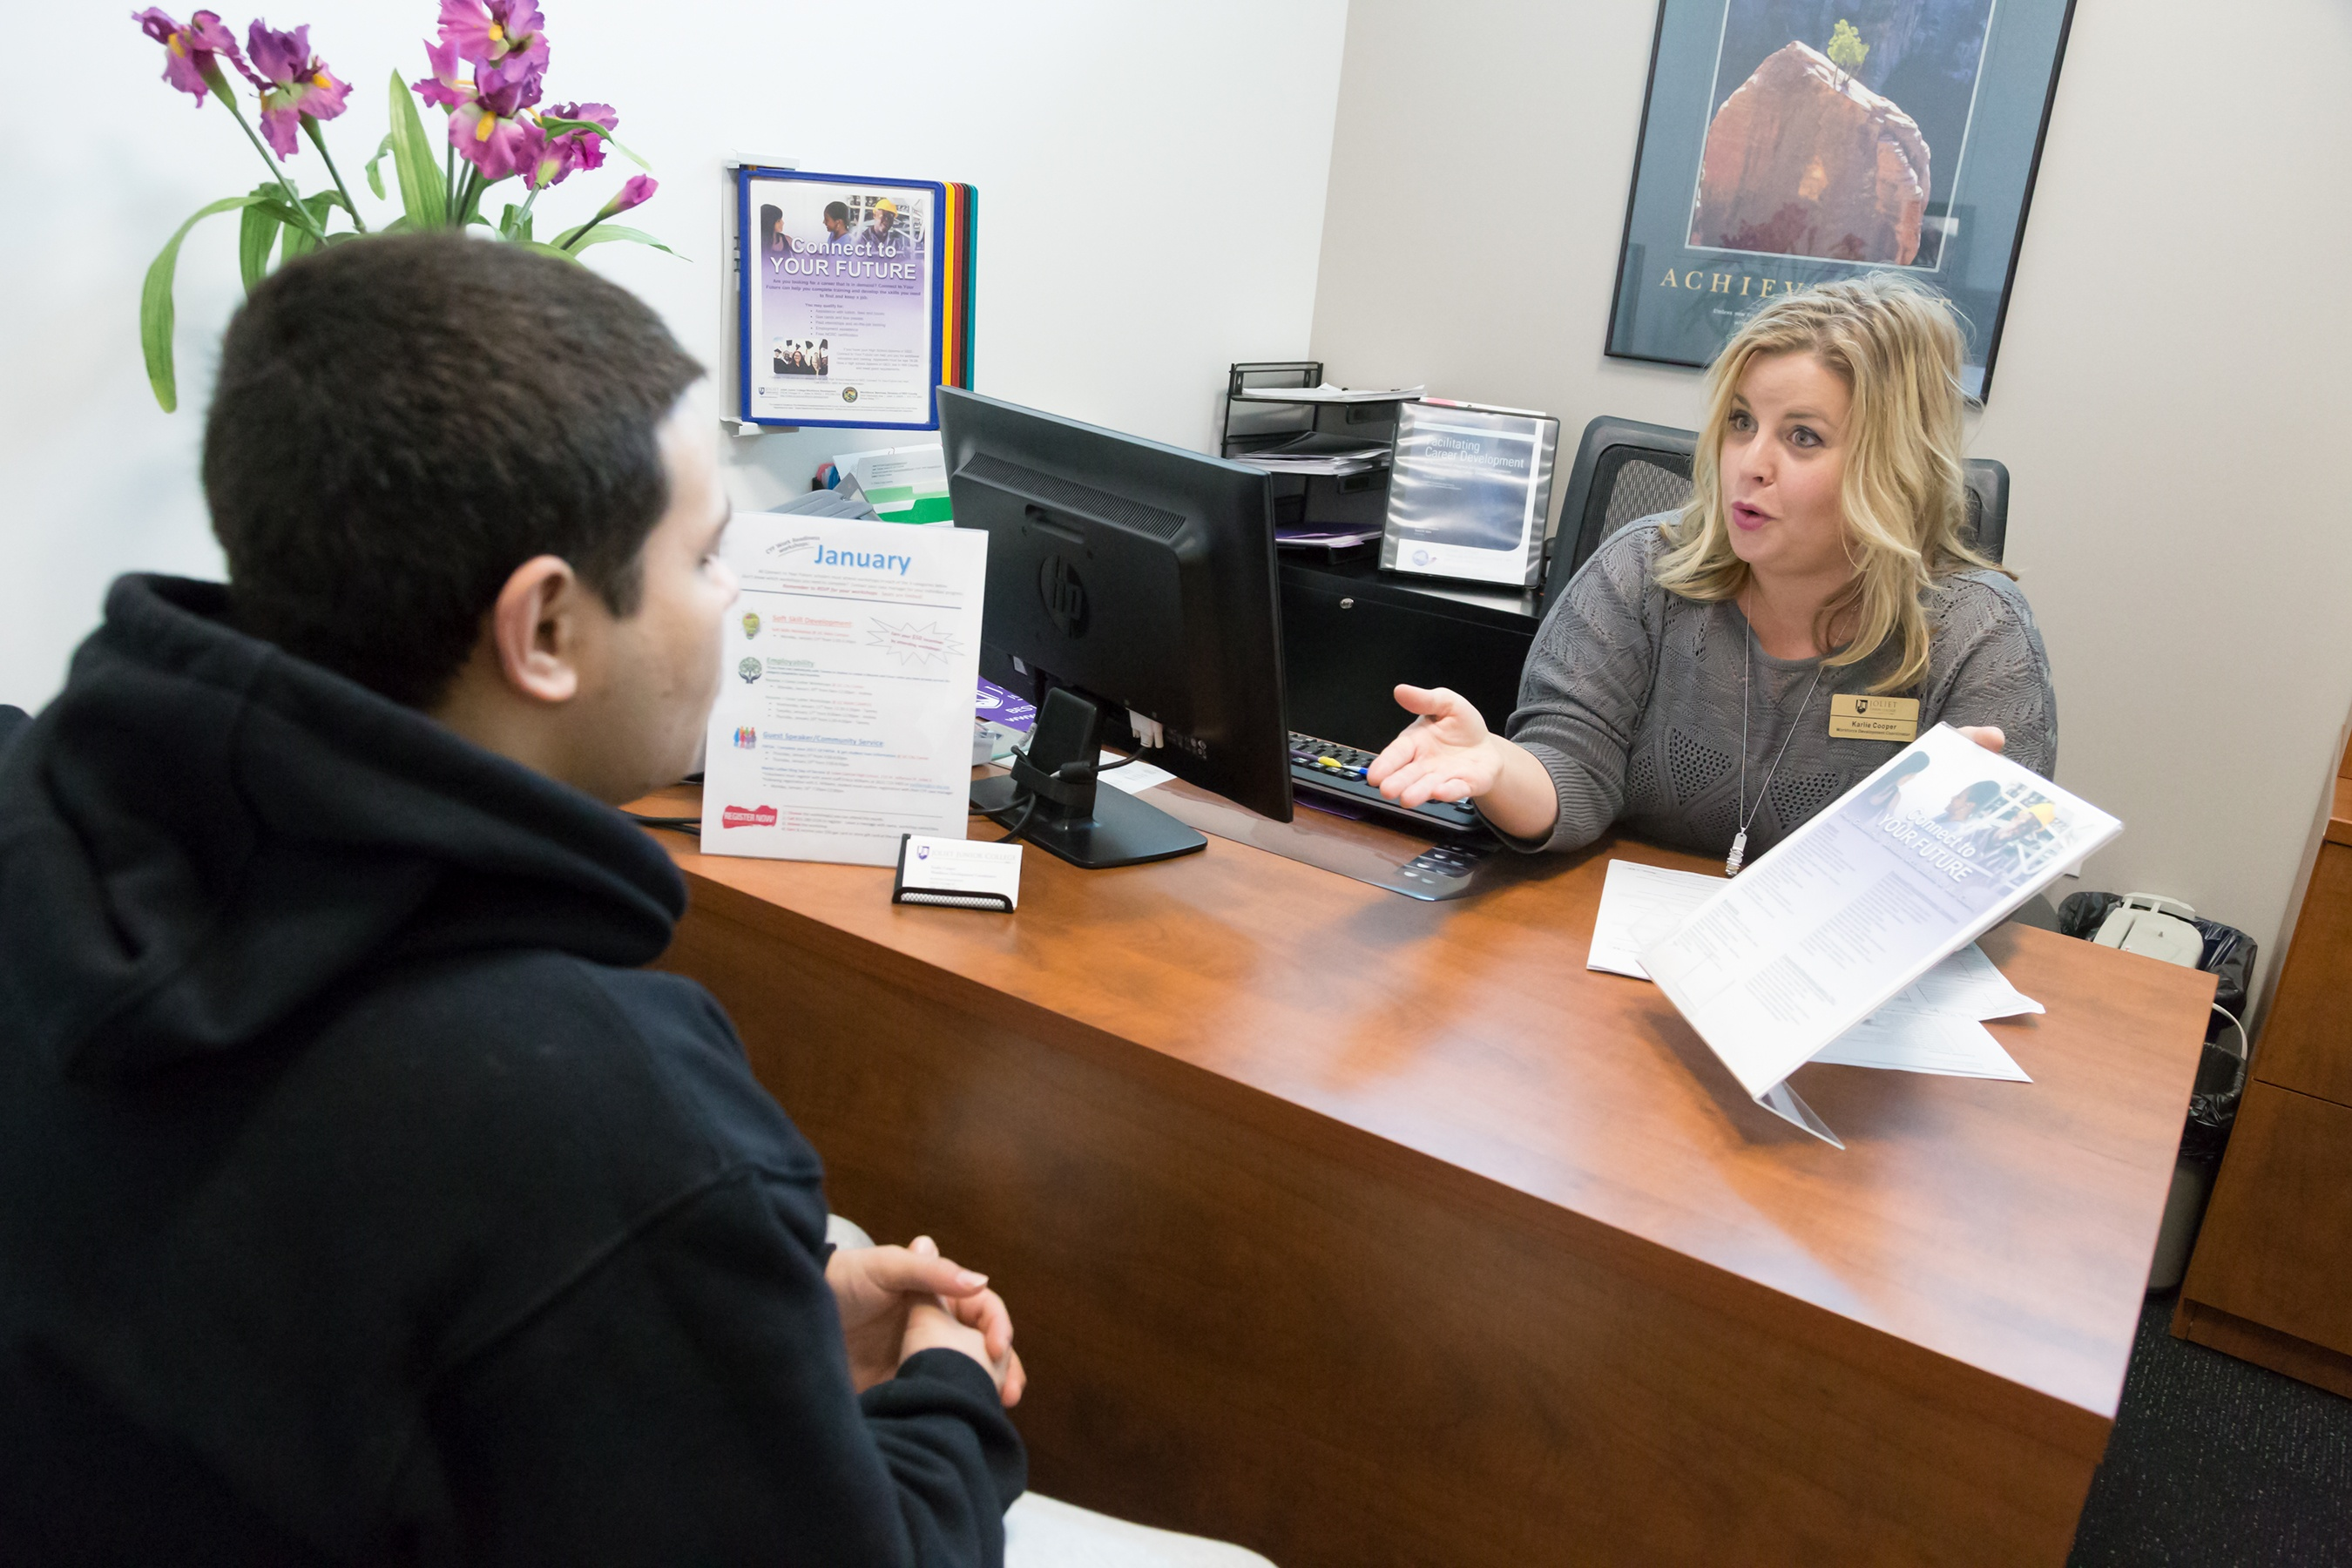 7 Things You Didn't Know About JJC Extended Campuses Morris Romeoville Joliet student services